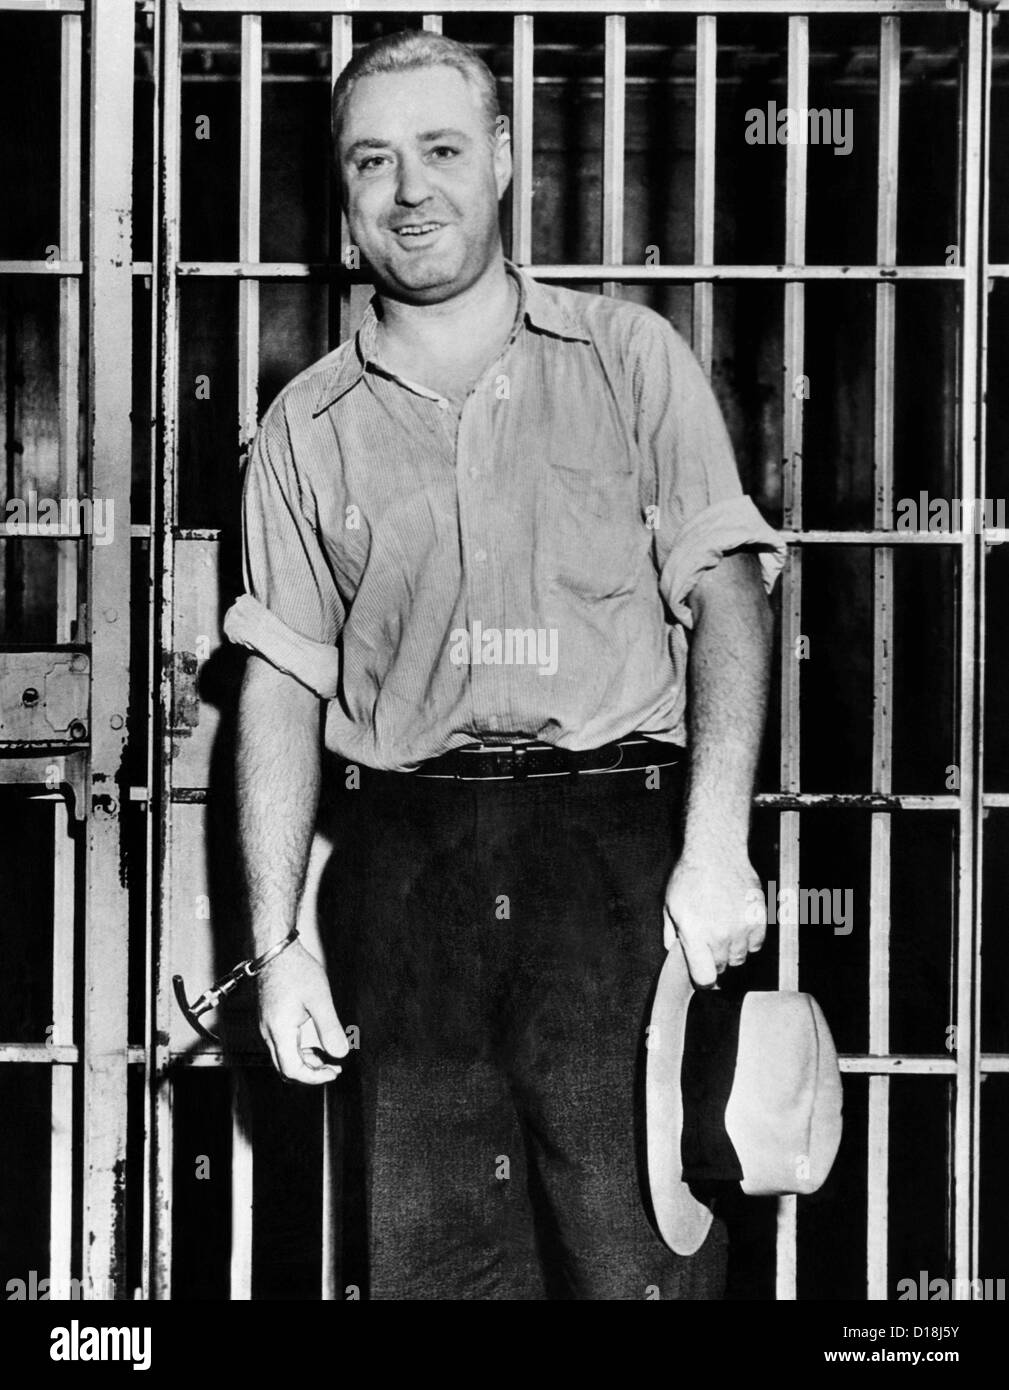 'Machine Gun' Kelly, handcuffed to cell bars, smiles for photographers in his Memphis jail cell. Sept. 26, 1933. Stock Photo